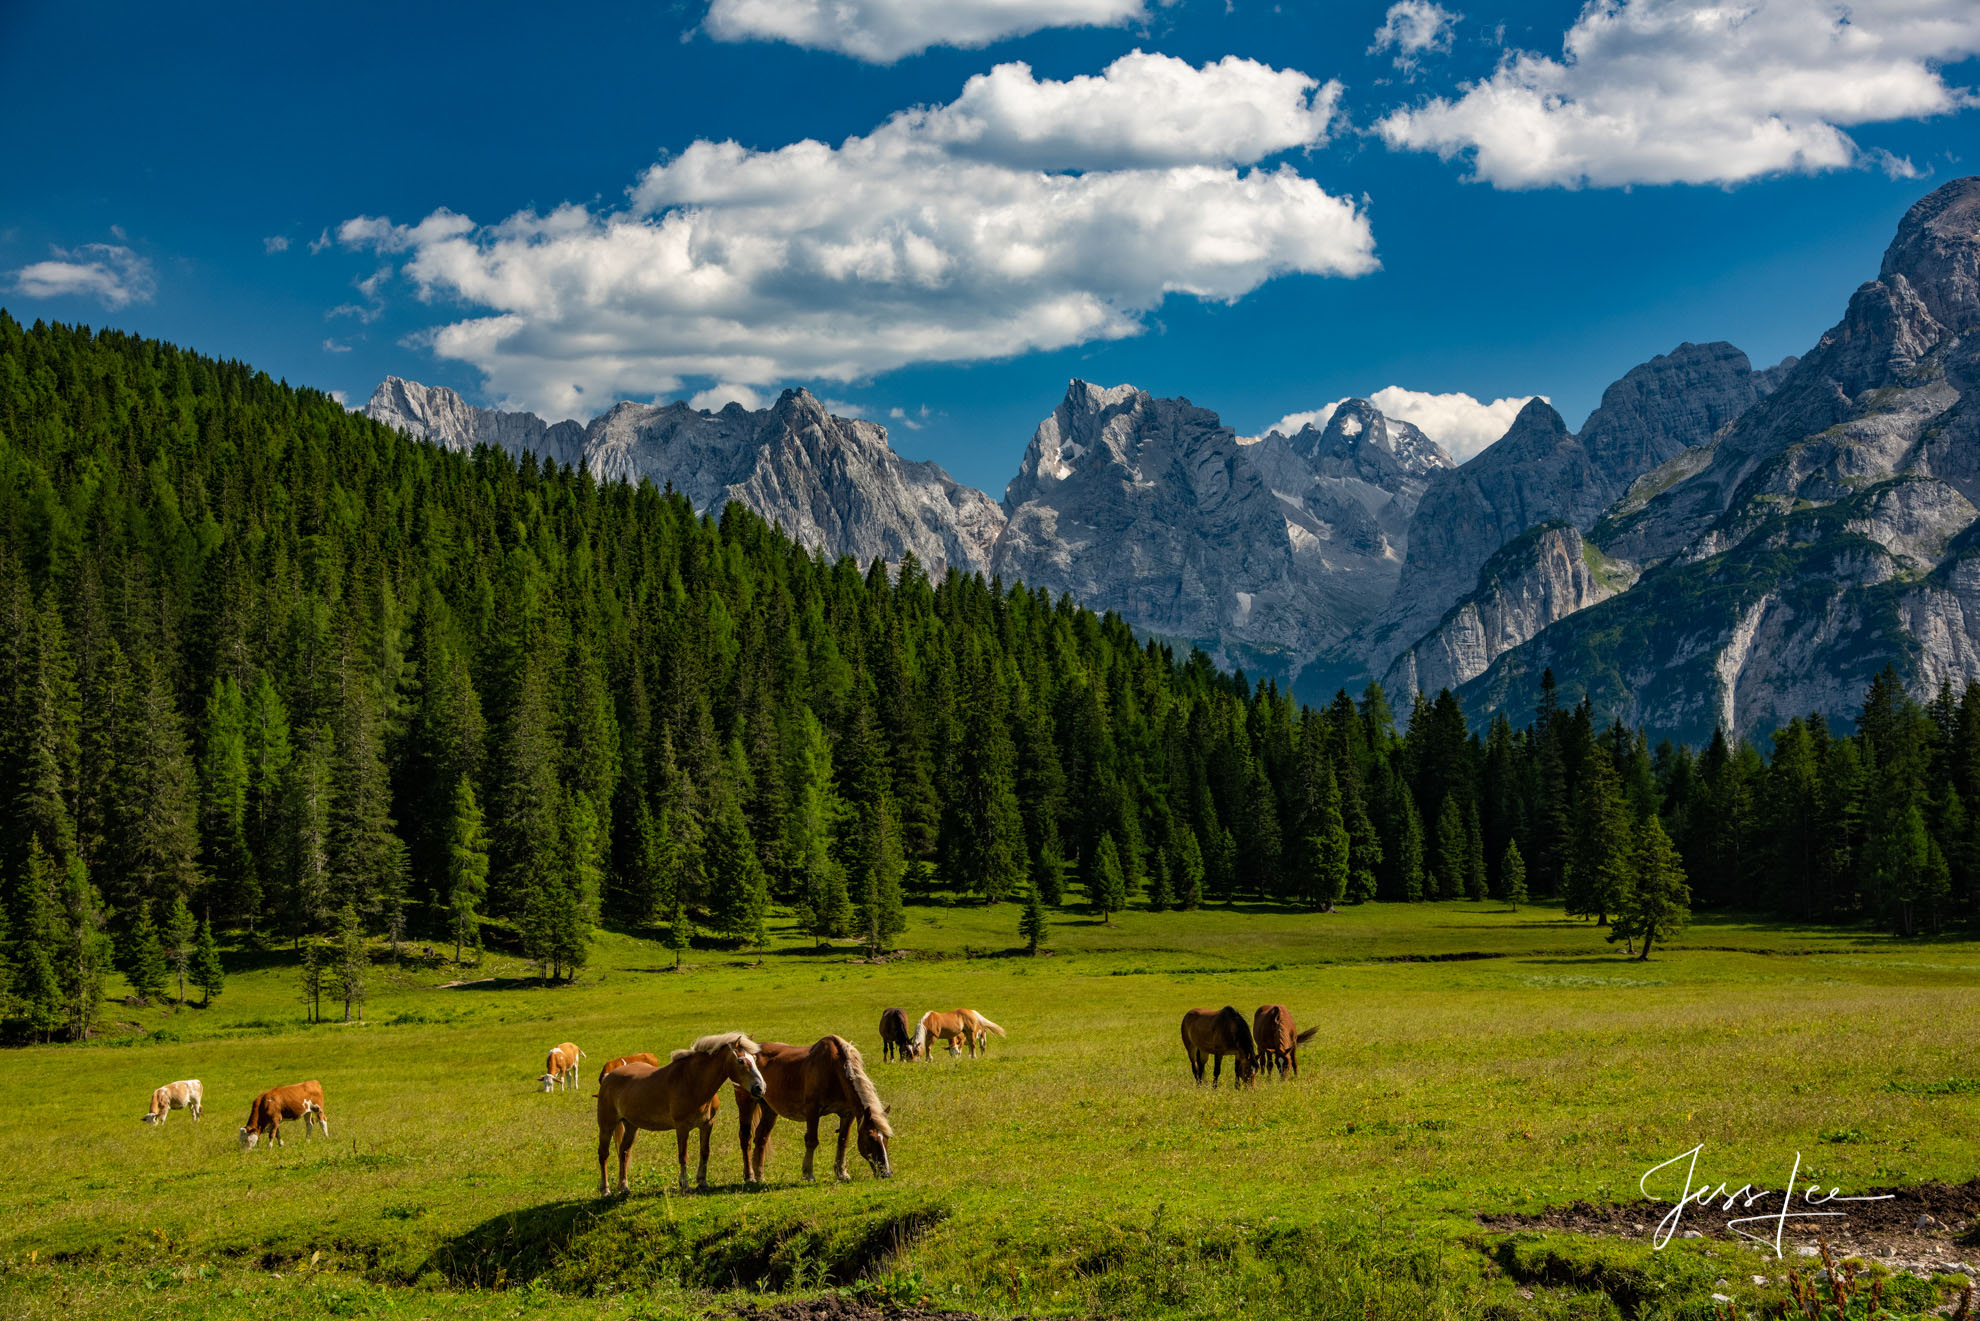 Dolomites, Haflinger, Italy, mountains, horses, rugged, fine art, limited edition, tyrol, jess lee, artist, western, cowboy, photographer, high quality, high resolution, beautiful, artistic, landscape, photo